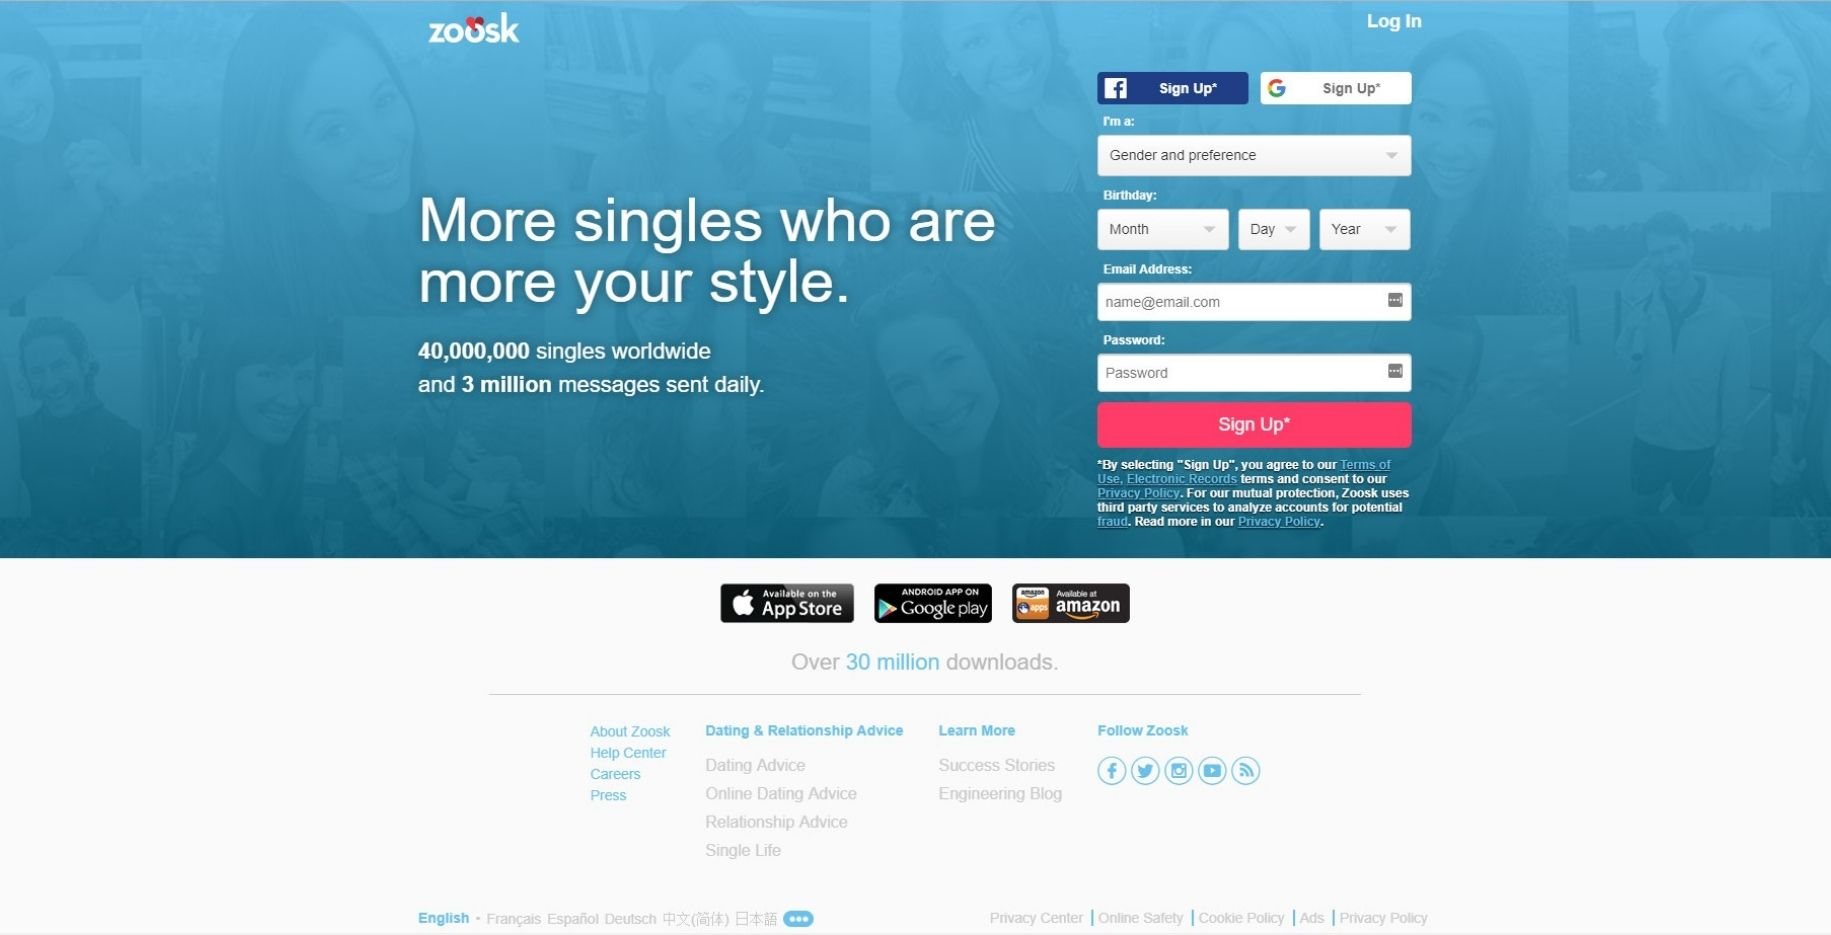 zoosk register for free